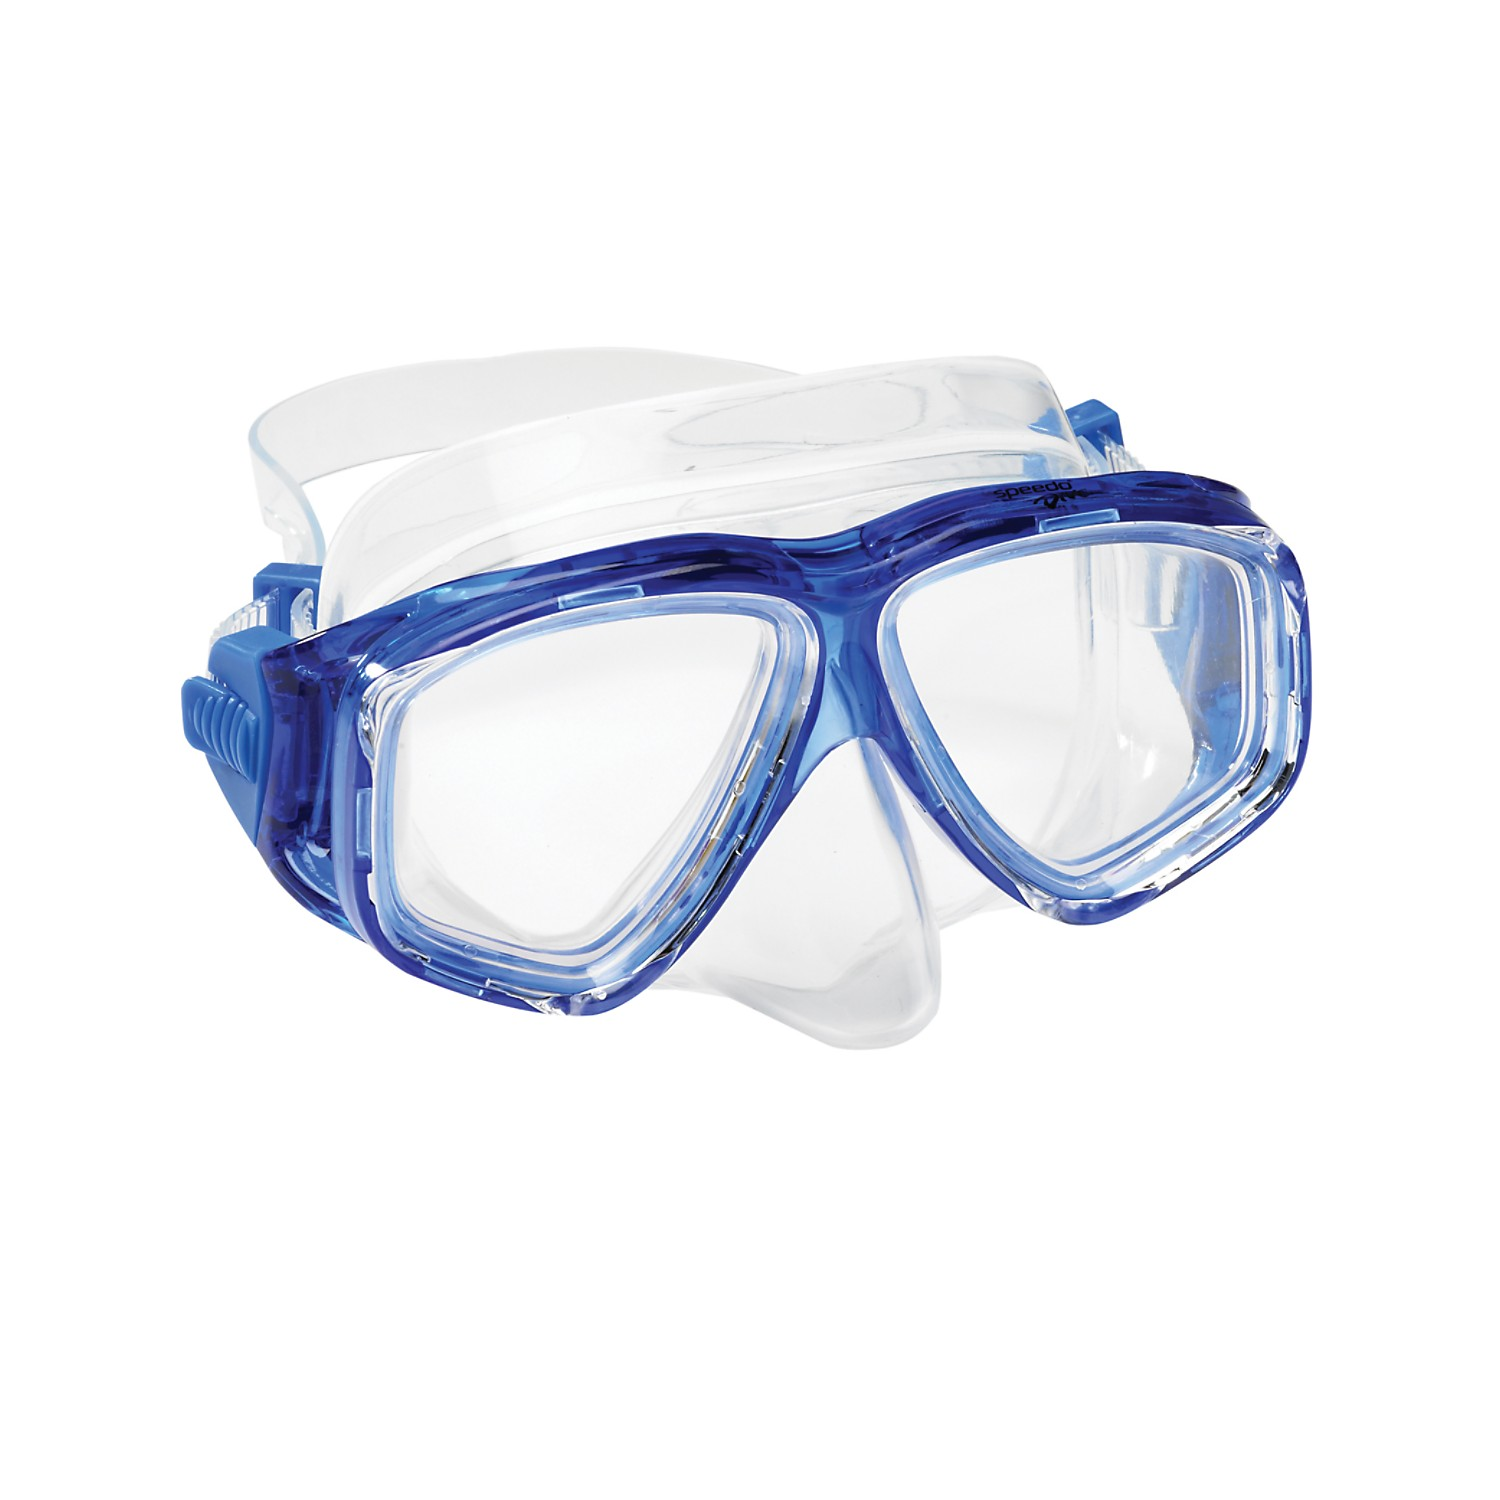 Speedo Dive Junior Recreation Adventure Swim Swimming Mask Goggles Durable Blue by Speedo